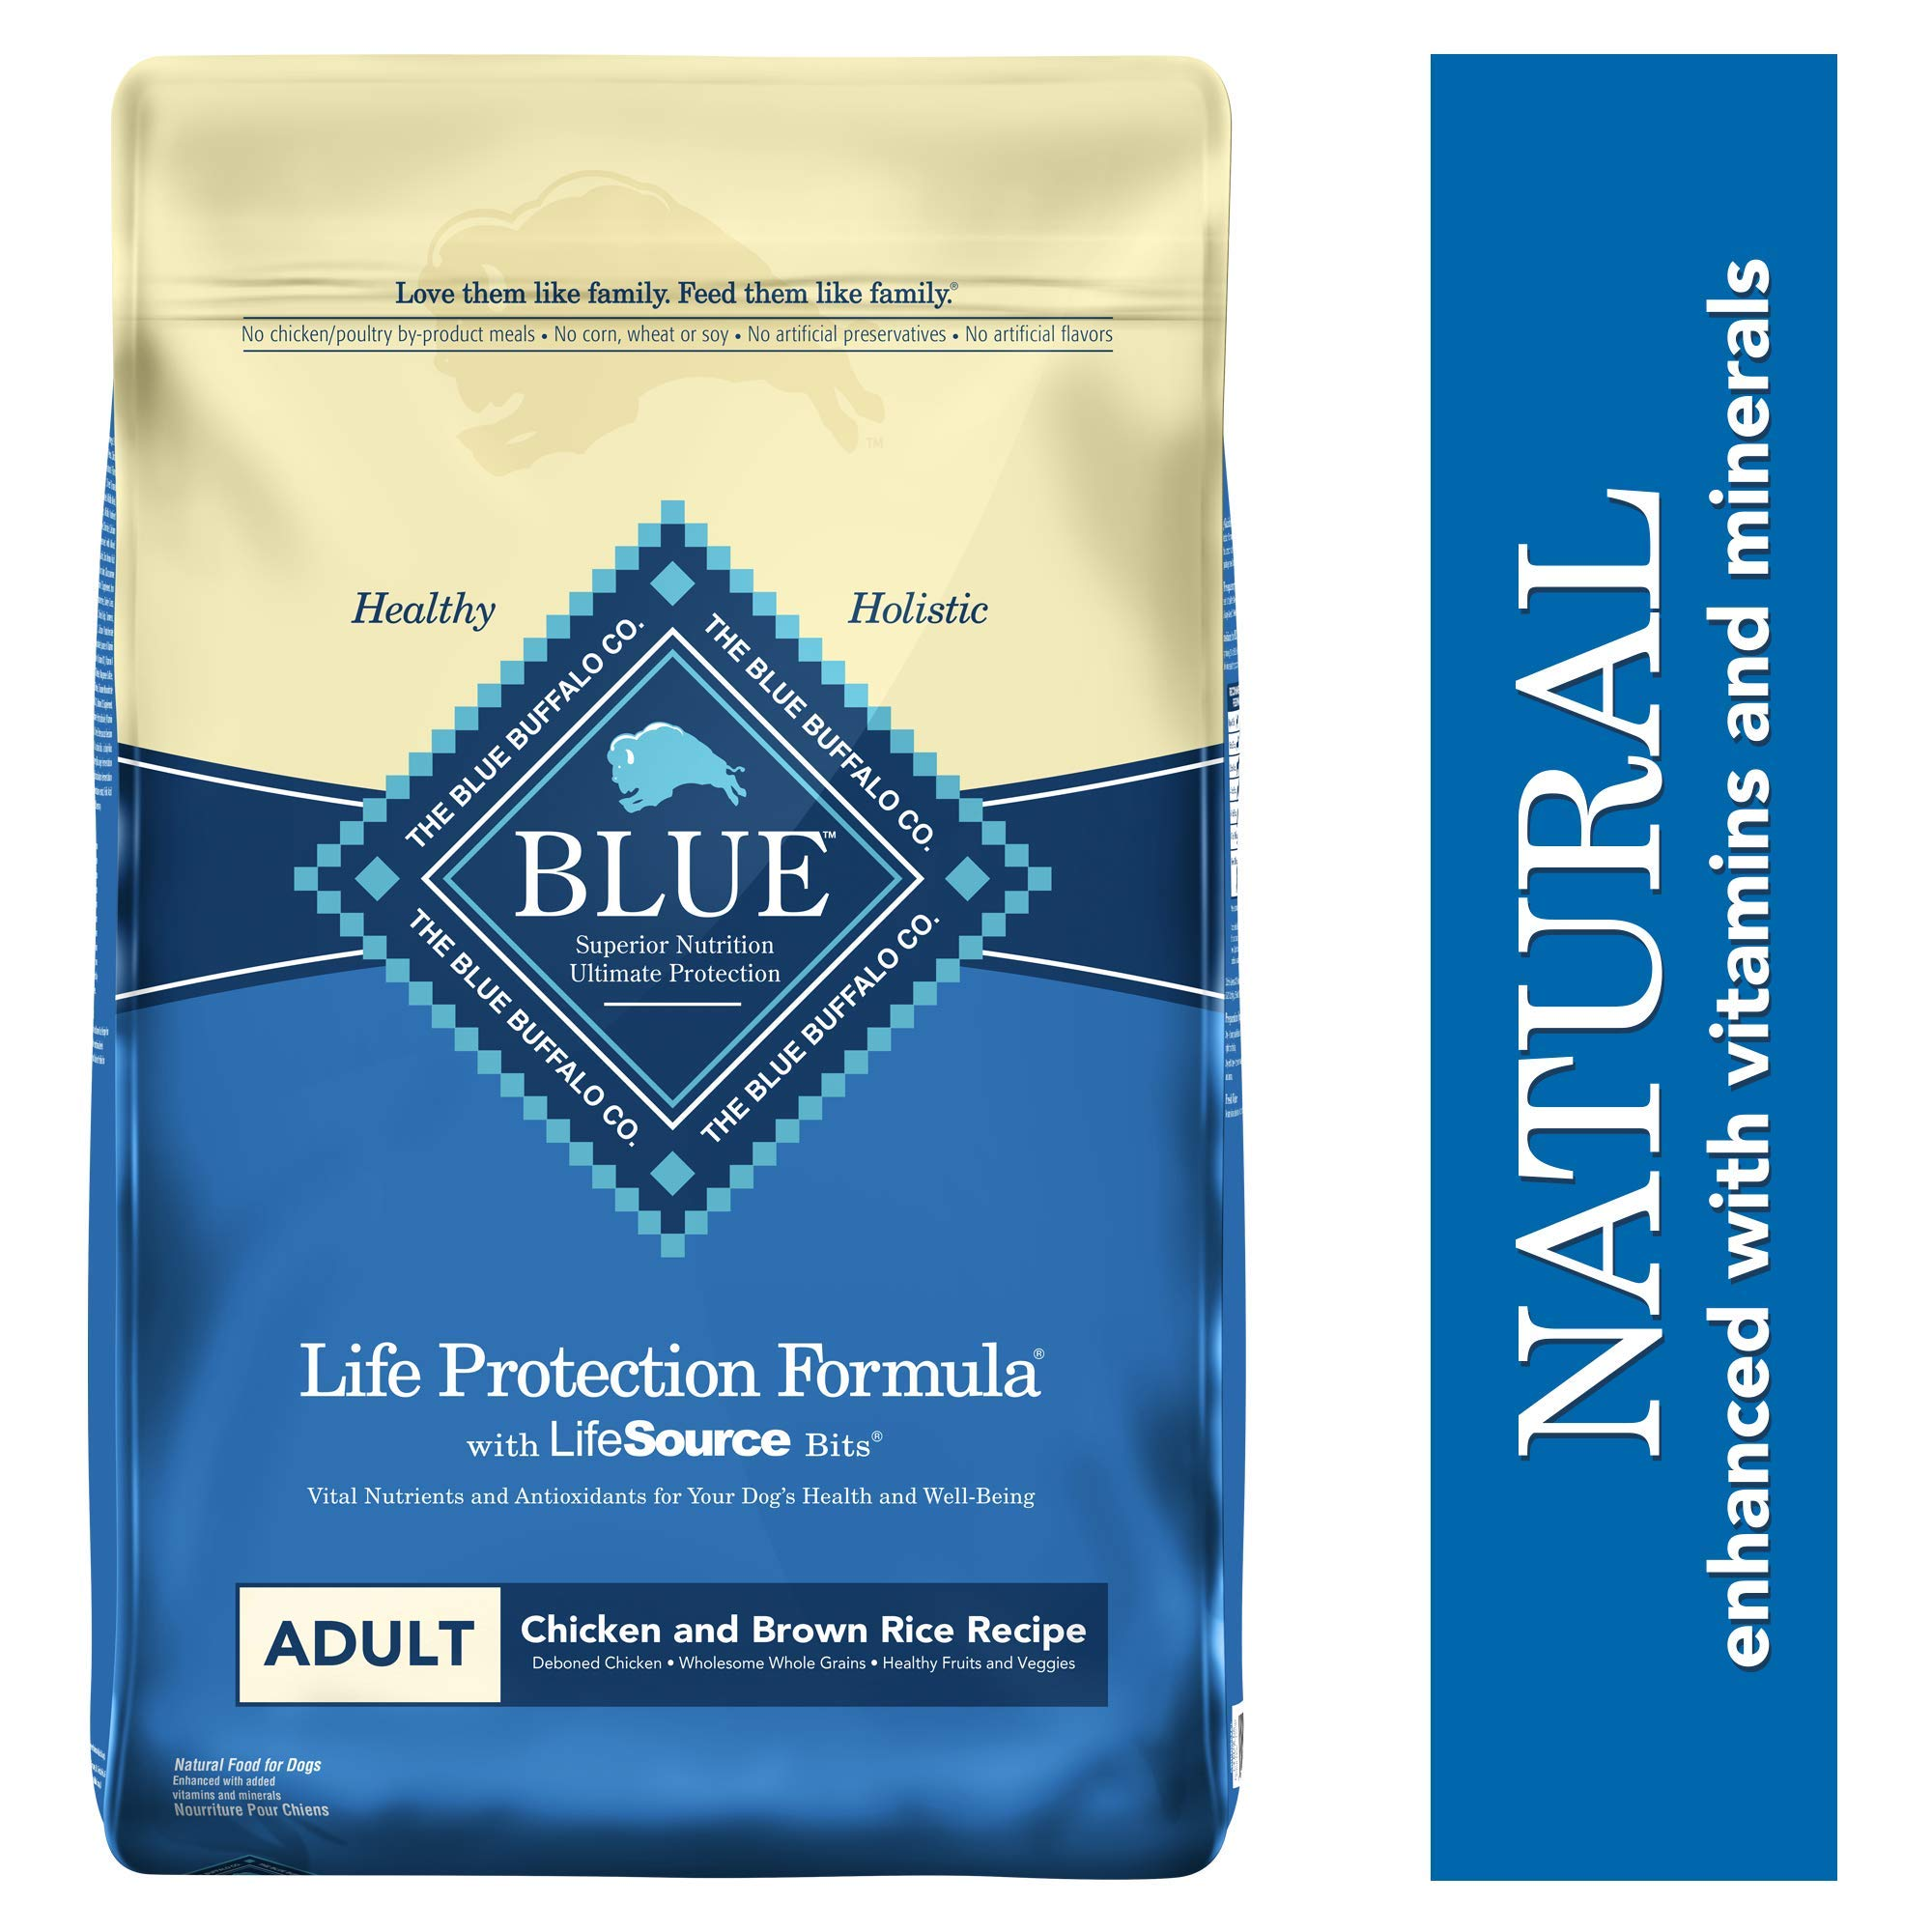 Blue Buffalo Life Protection Formula Adult Dog Food - Natural Dry Dog Food for Adult Dogs - Chicken and Brown Rice - 30 lb. Bag by Blue Buffalo